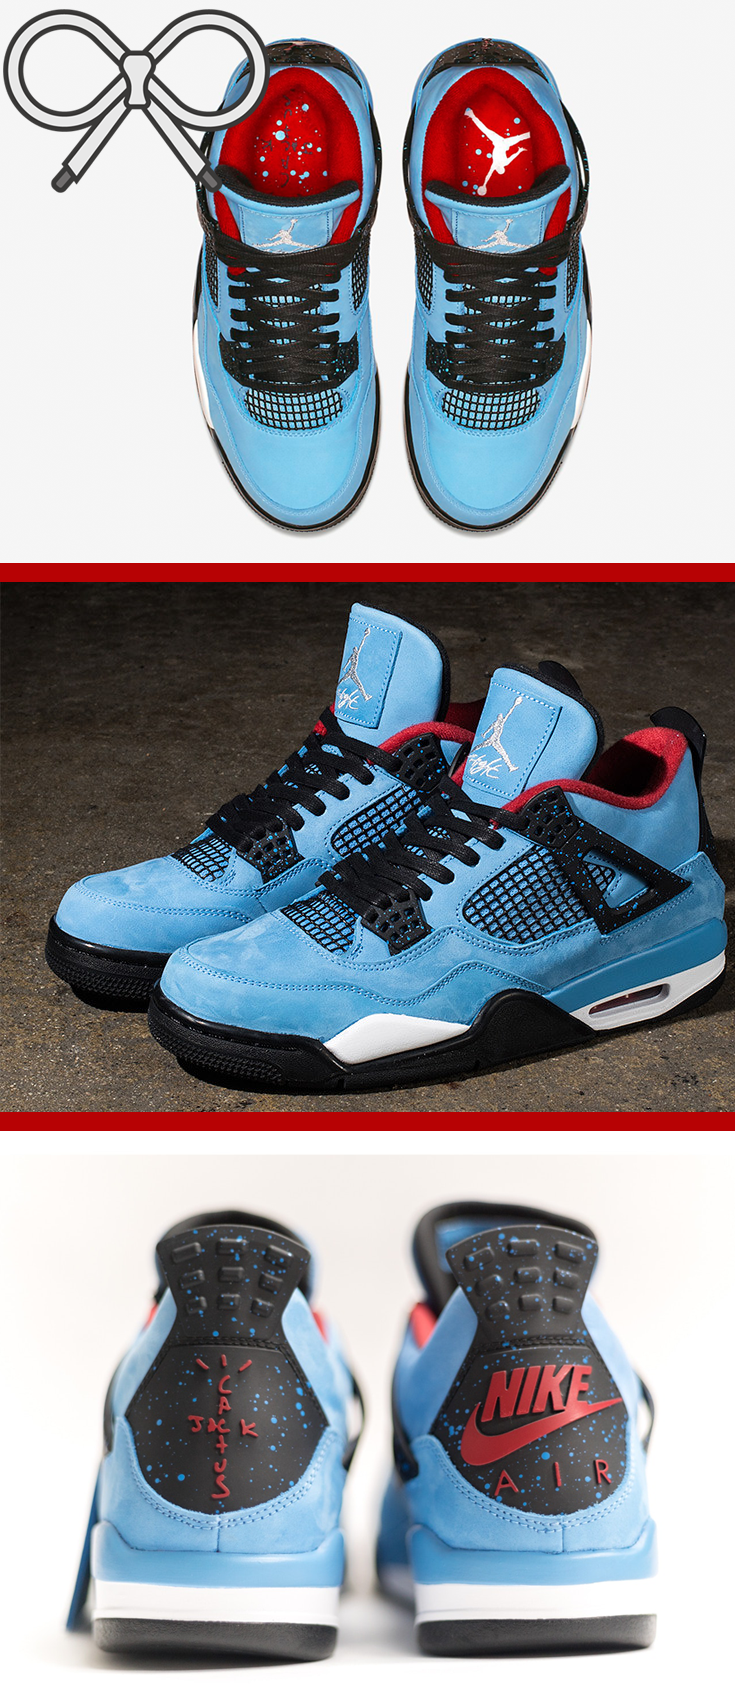 low priced 536c6 a30ce From the Travis Scott x Air Jordan collaboration. Blue and red. Cactus jack.